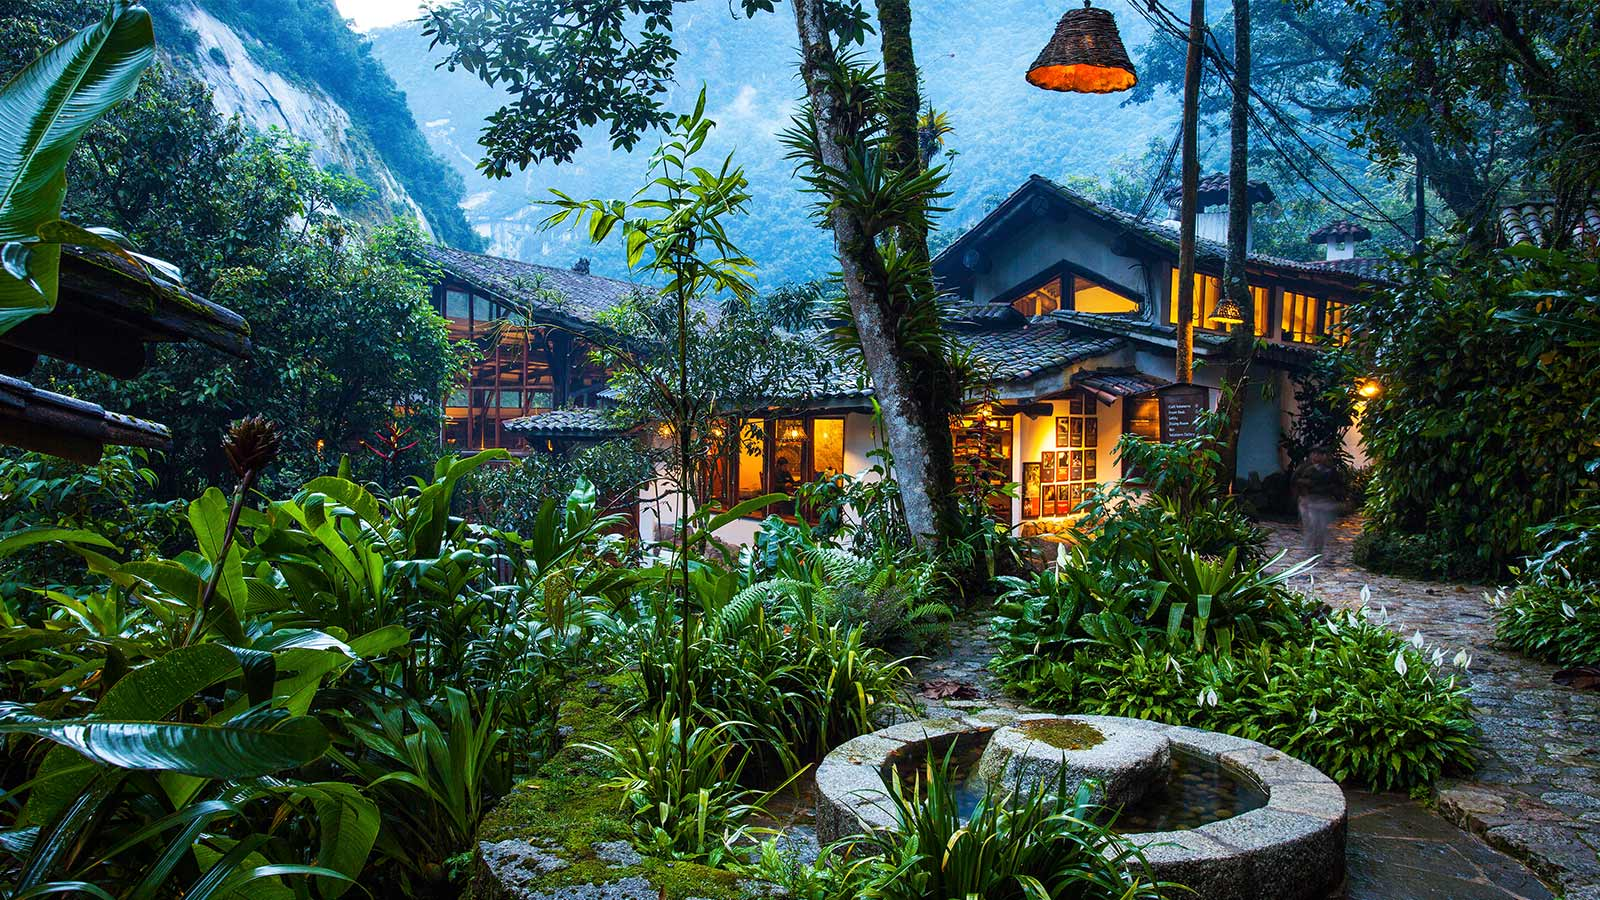 Gardens of the InkaTerra Machu Picchu Pueblo hotel in Peru